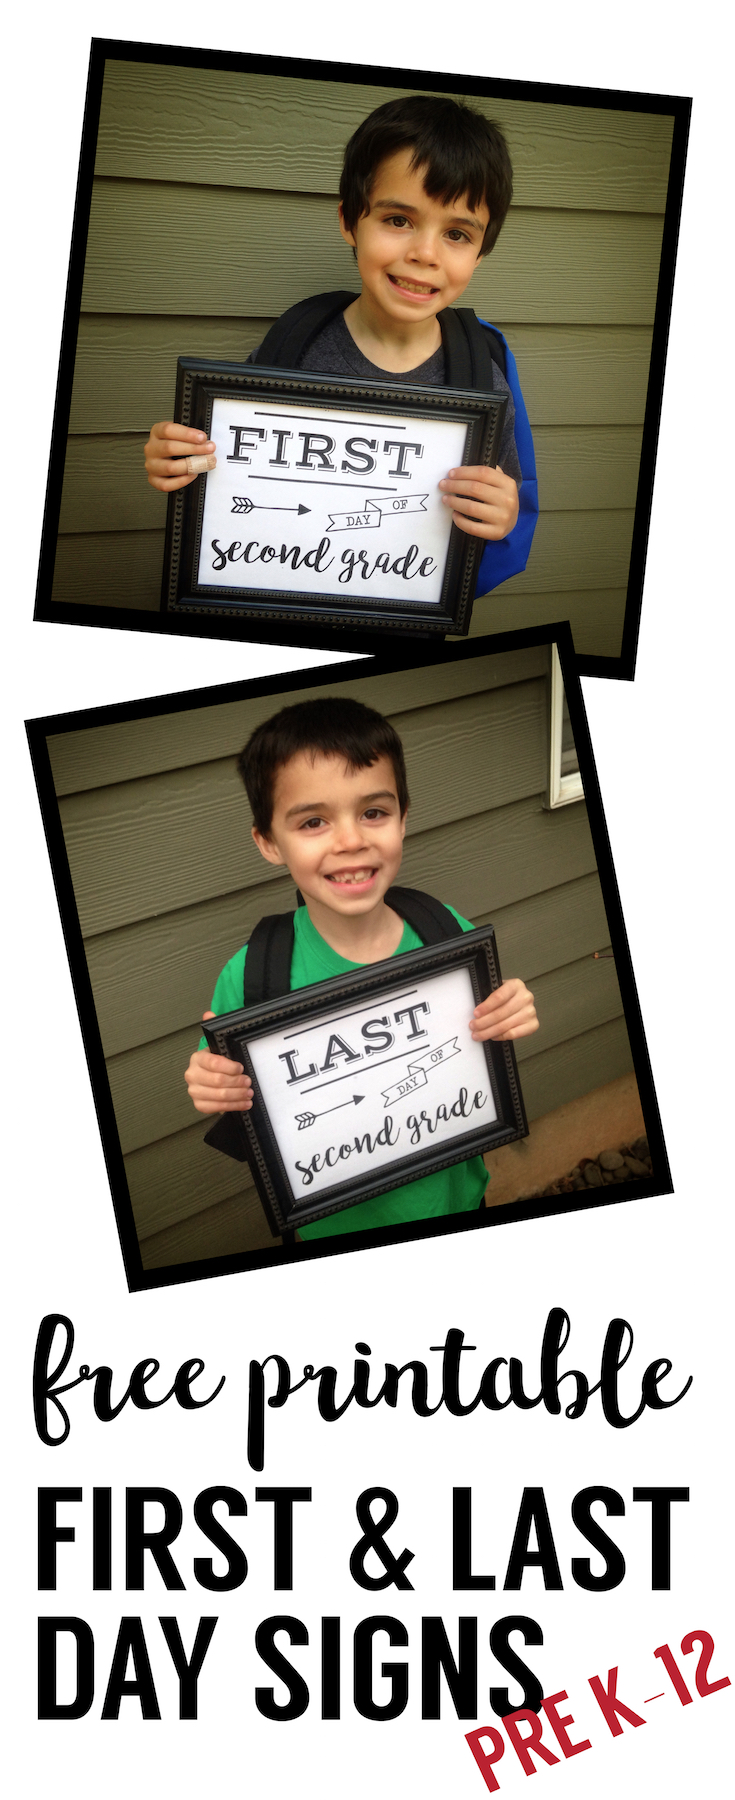 First and Last Day of School Matching Sign Free Printable poster. Preschool, Kindergarten, First Grade, through Senior year. Print this sign for back to school pictures.